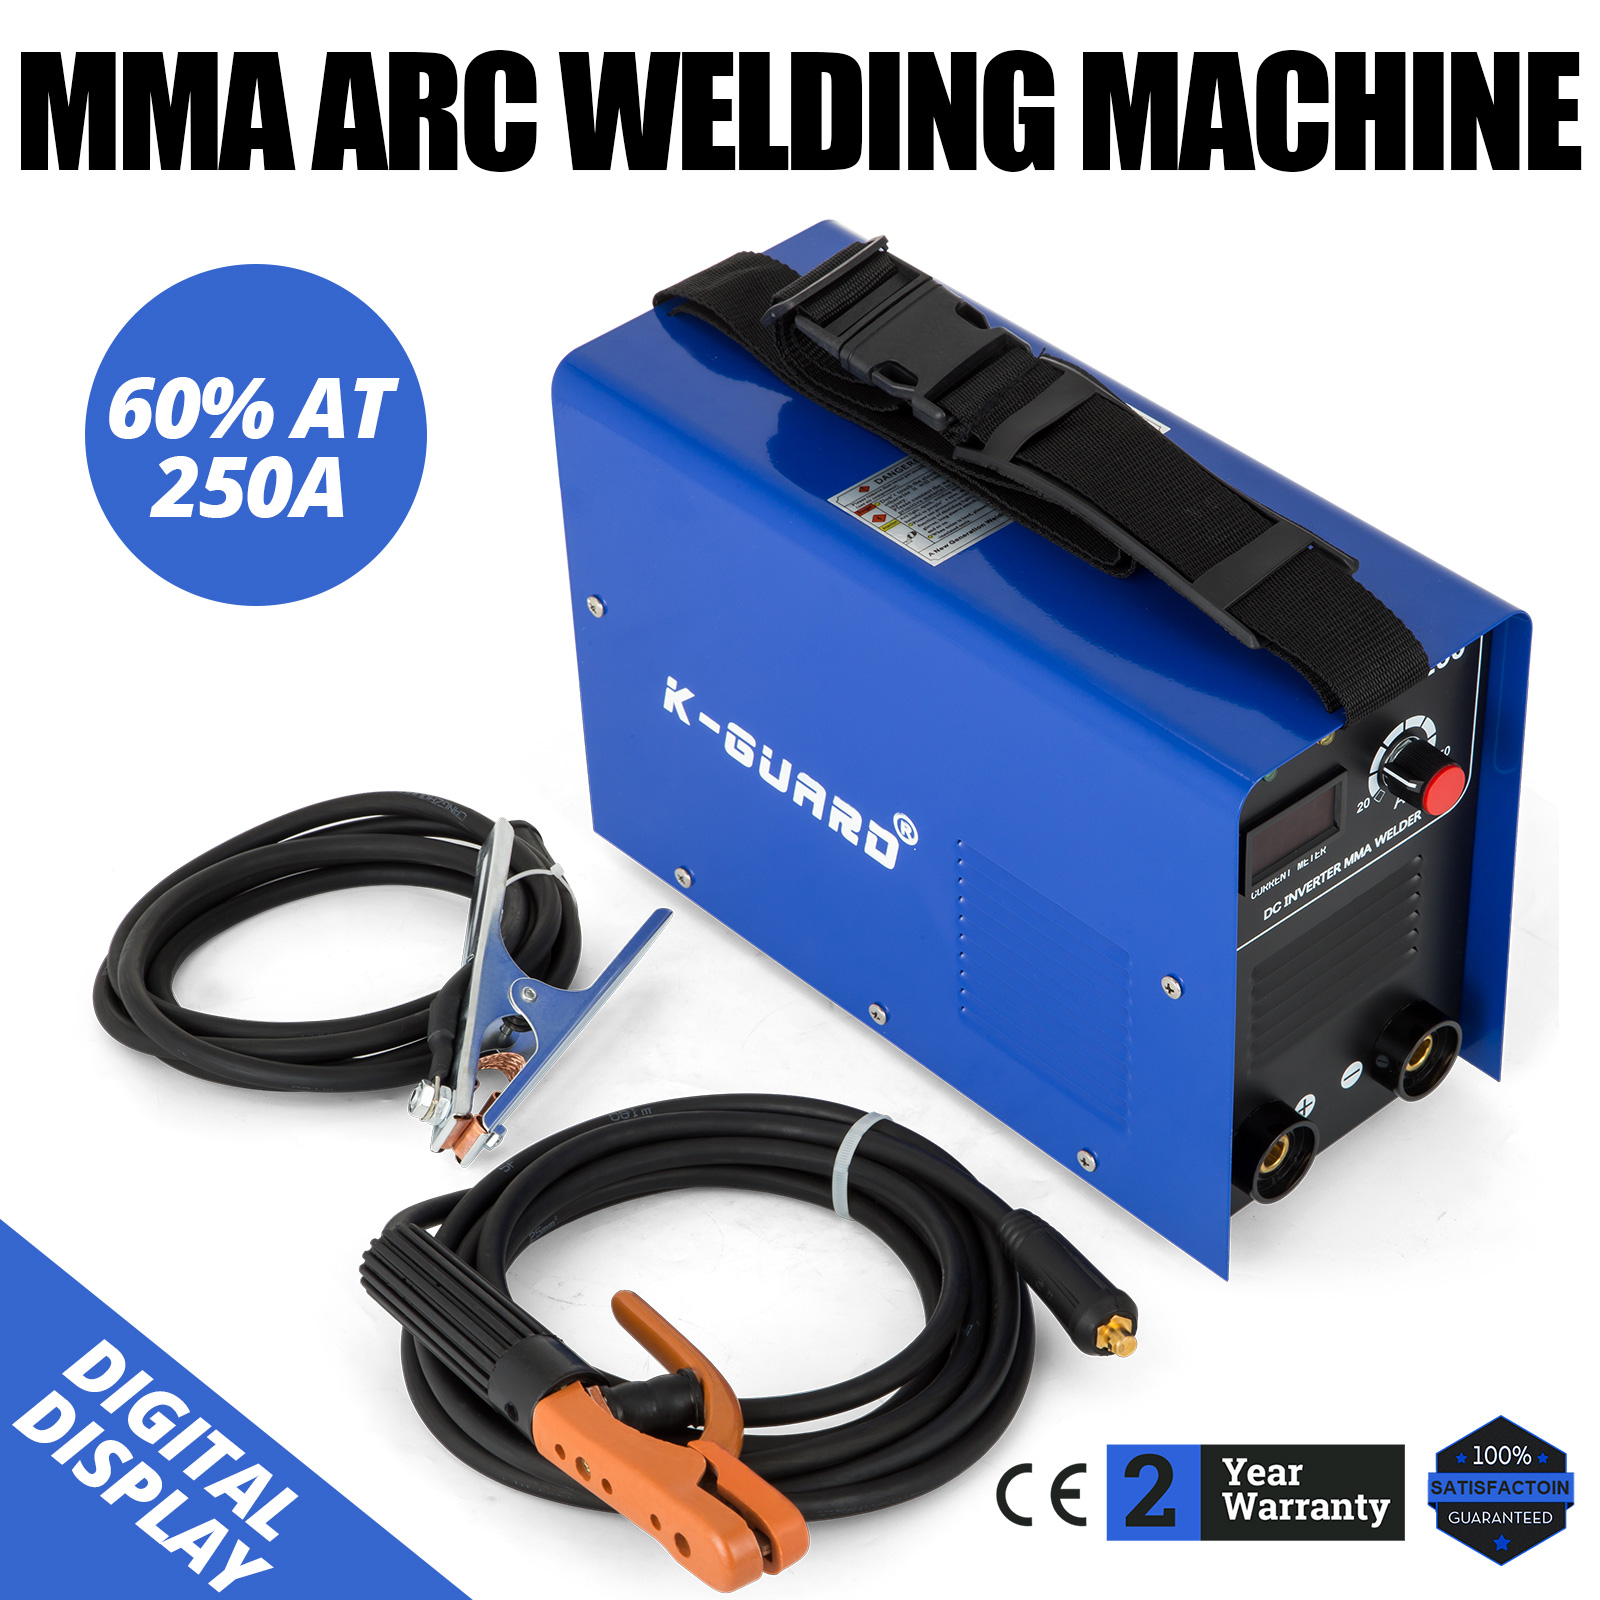 250 AMP INVERTER Welder MMA ARC Portable Welding Machine